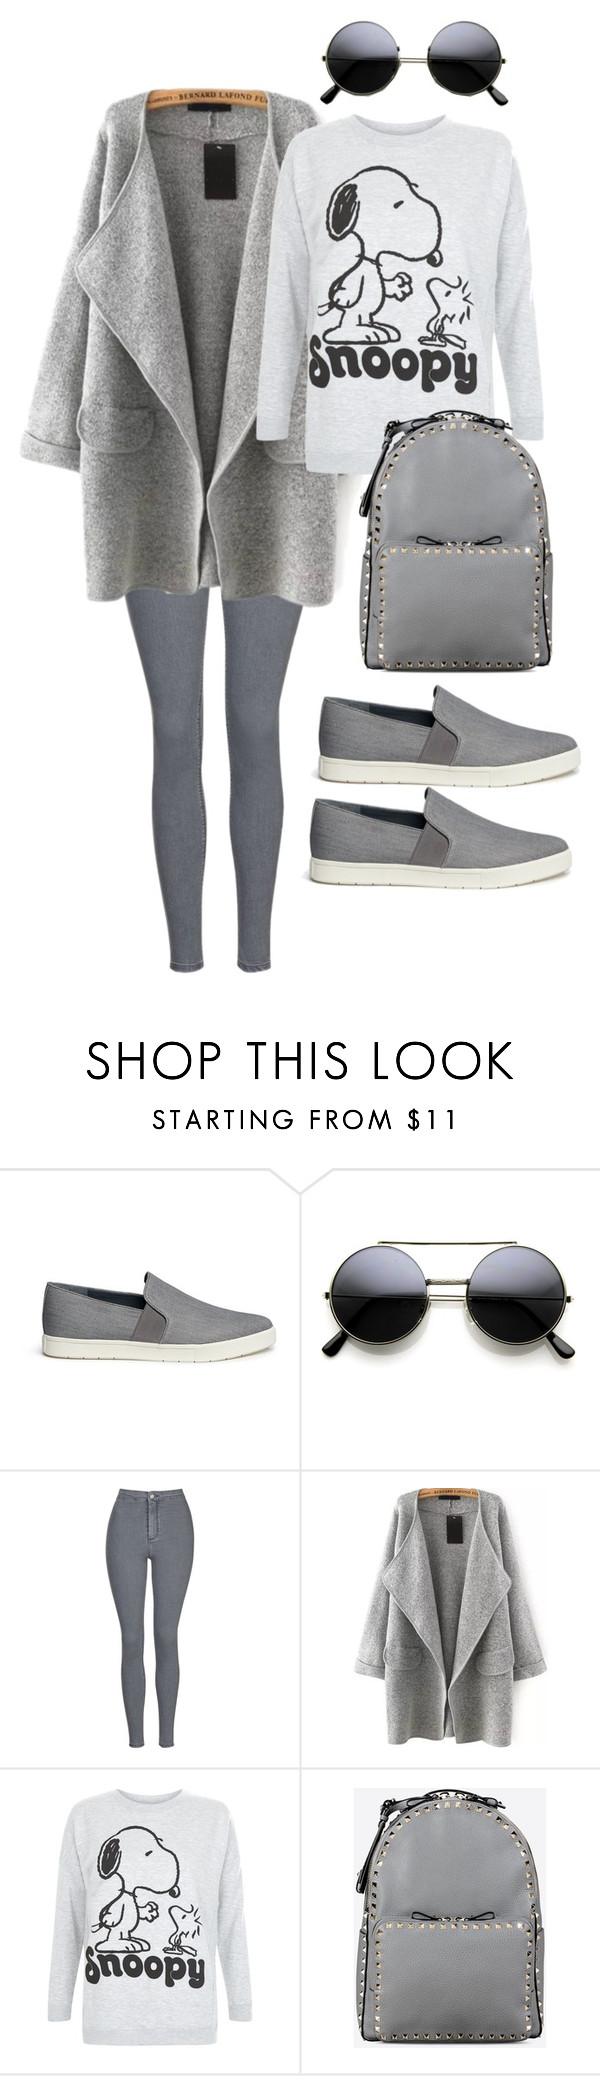 """""""Untitled #37"""" by lisiqv ❤ liked on Polyvore featuring mode, Vince, Topshop, Valentino, women's clothing, women's fashion, women, female, woman en misses"""